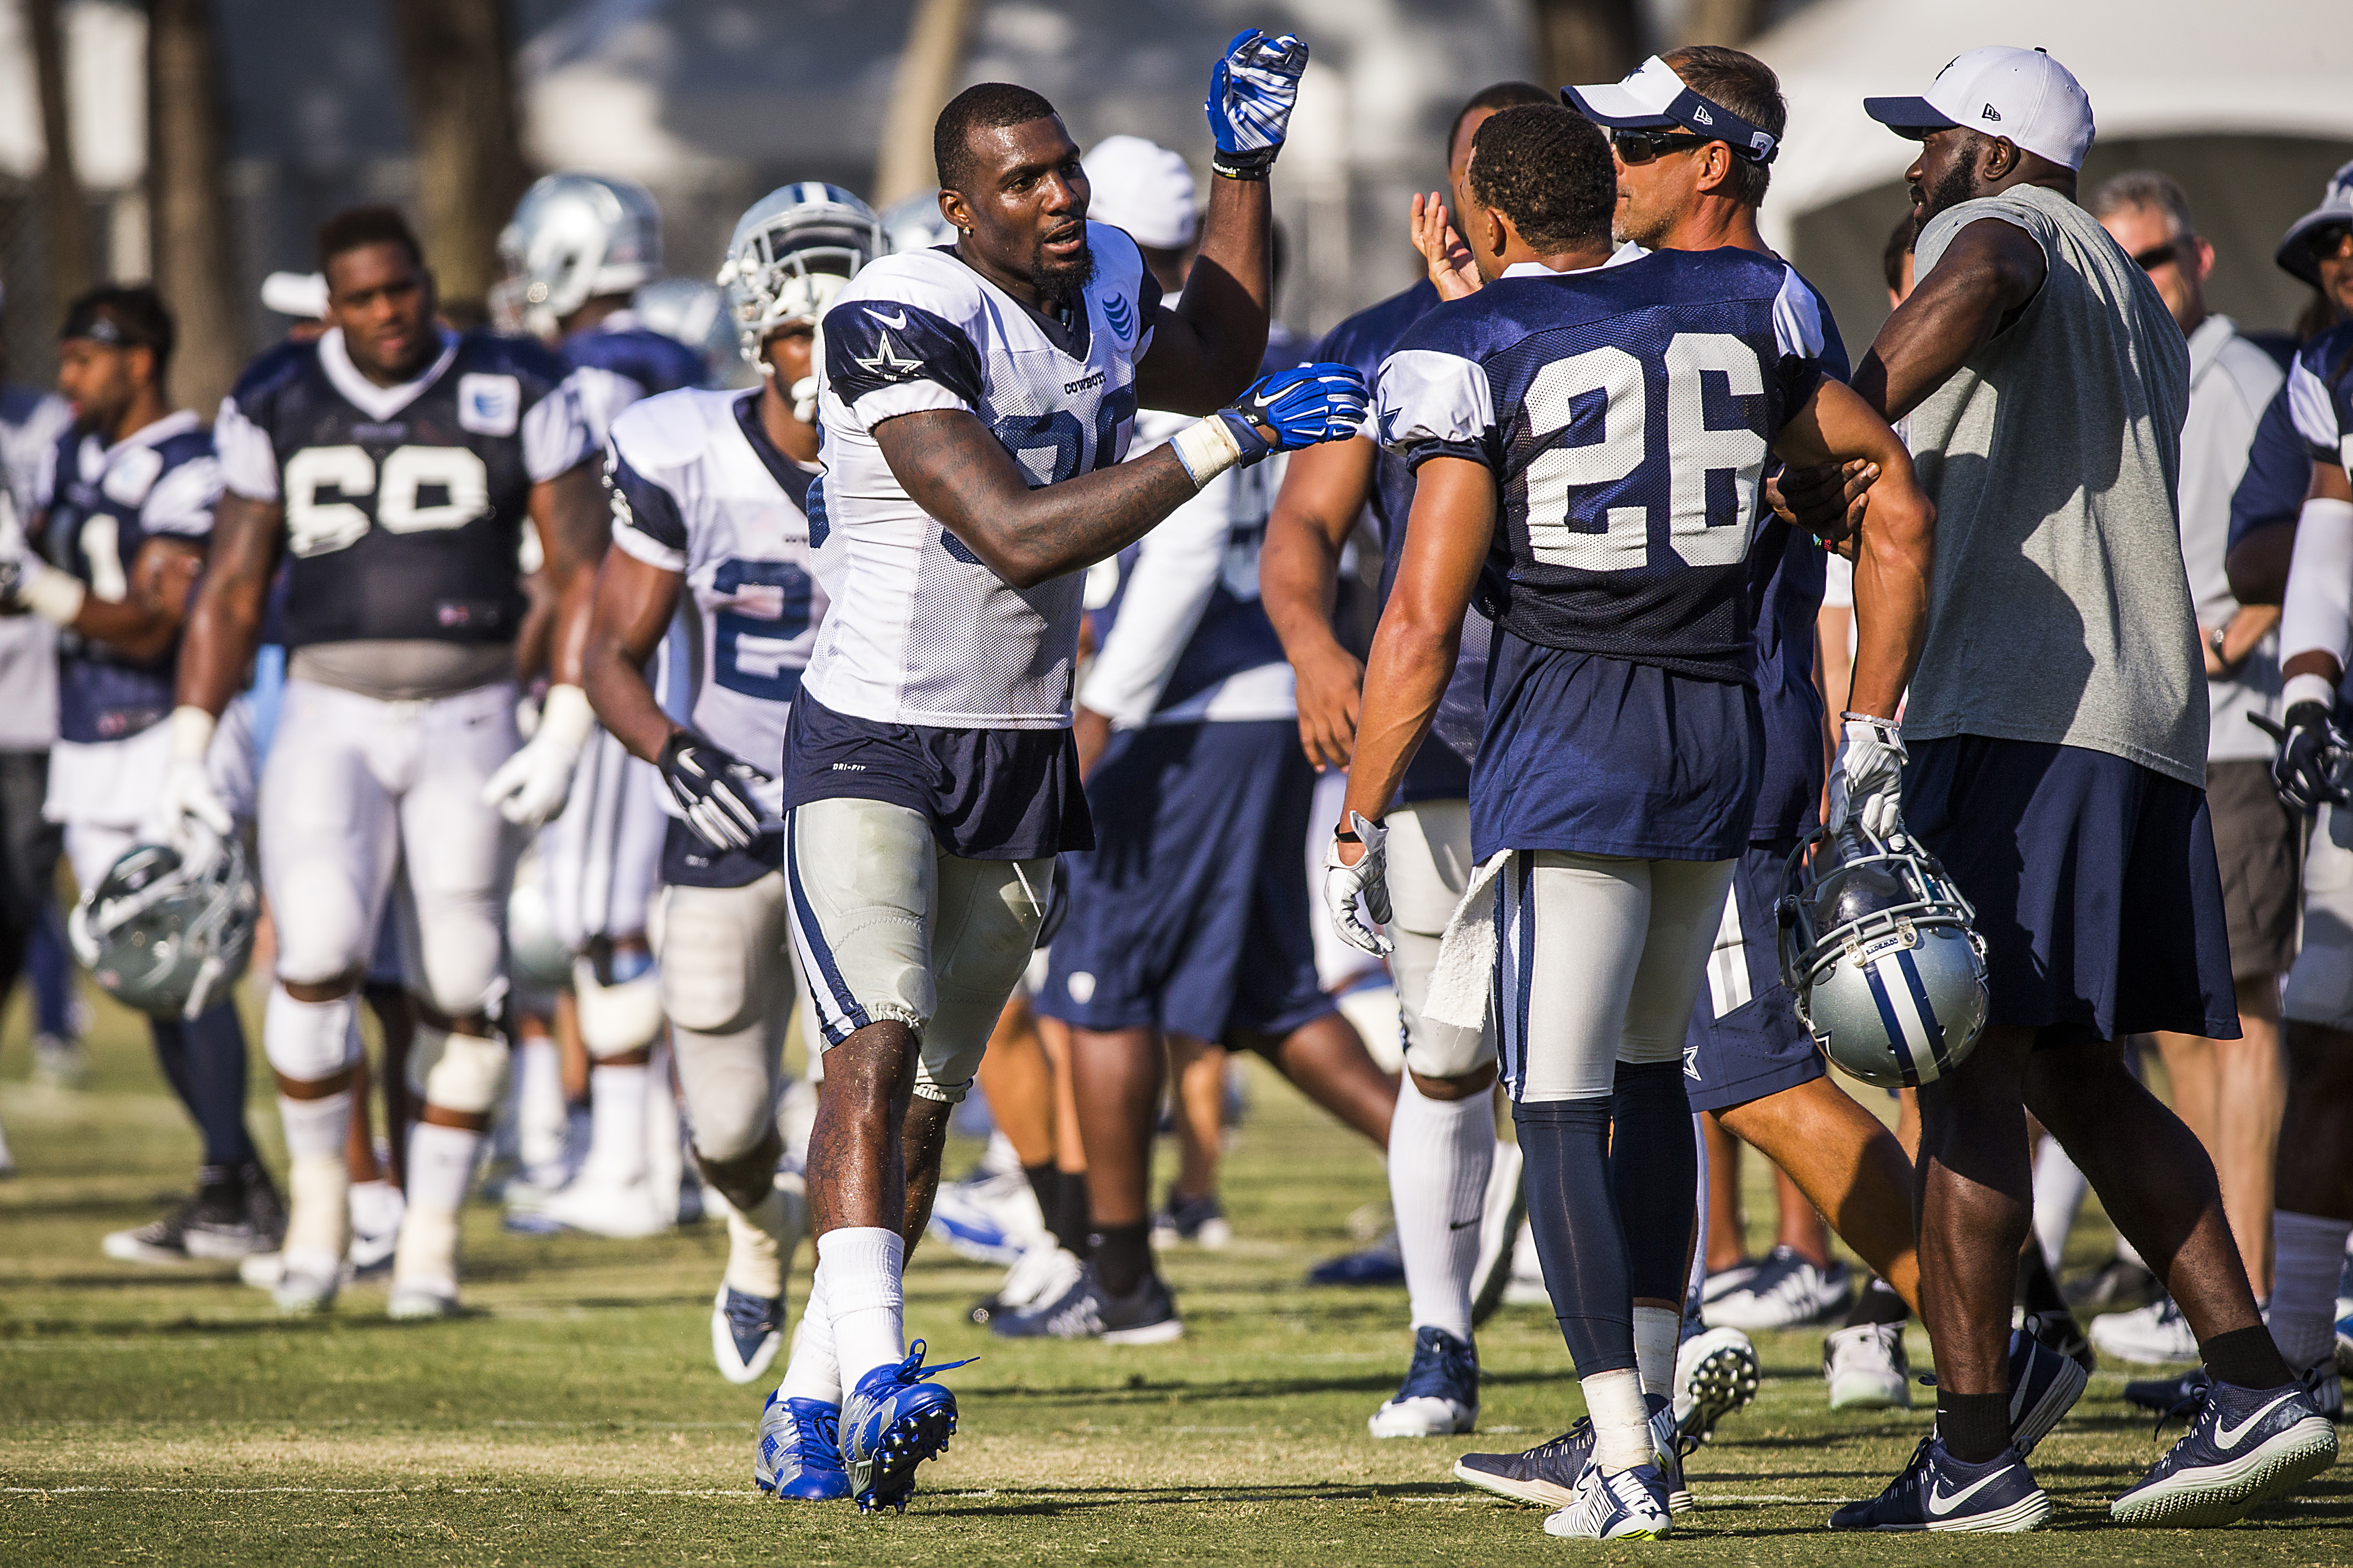 Dallas Cowboys s Dez Bryant Tyler Patmon into fight